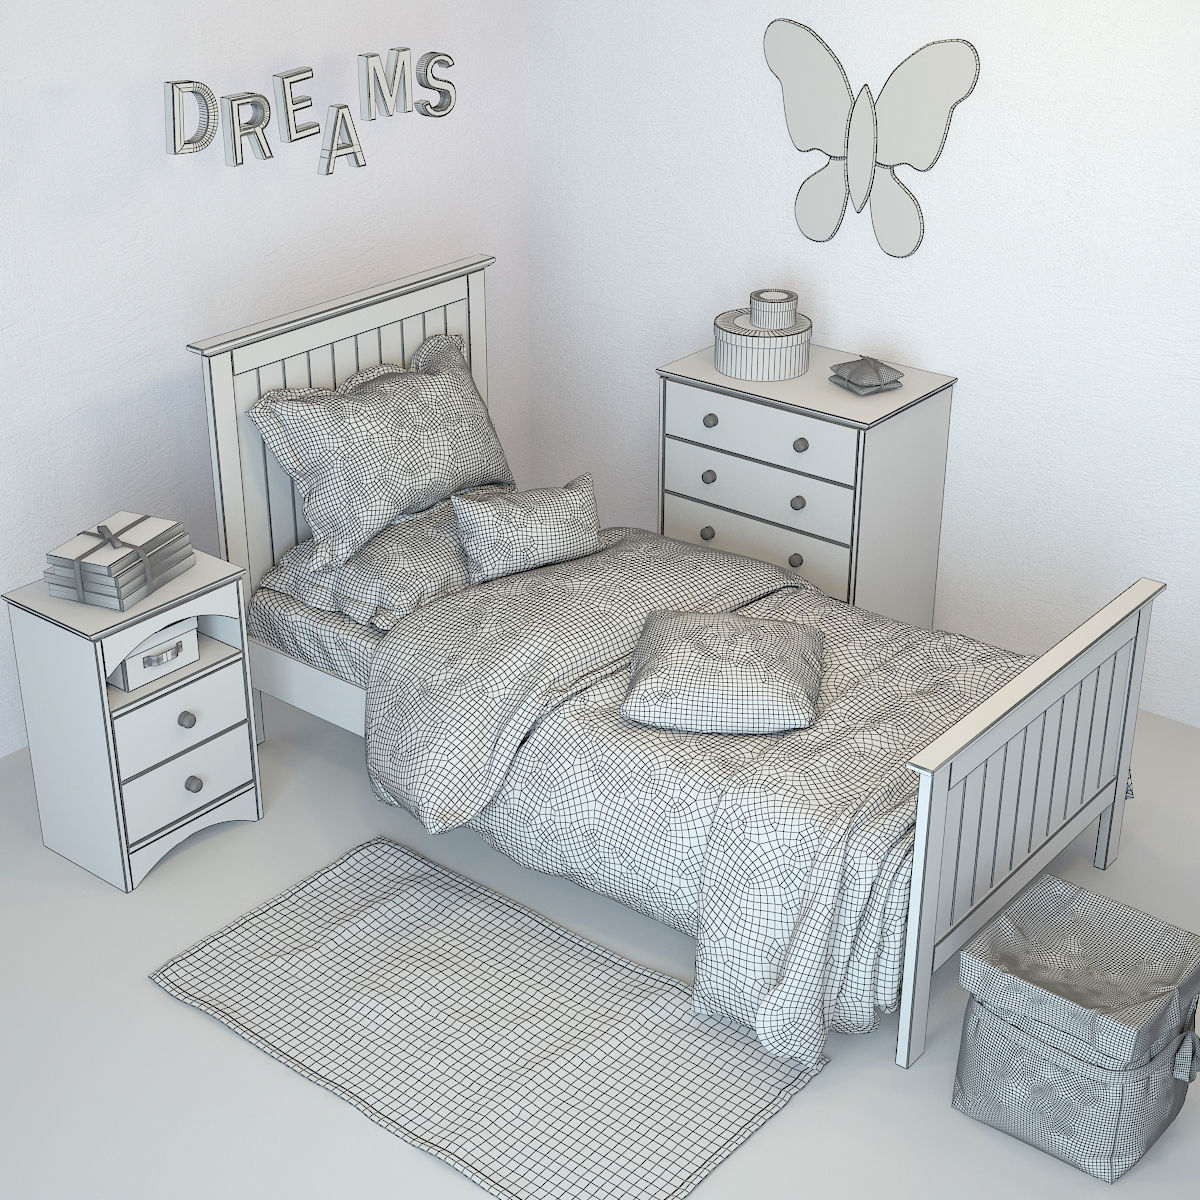 Nursery Furniture Barney 01 Model Max Obj Mtl Fbx 6